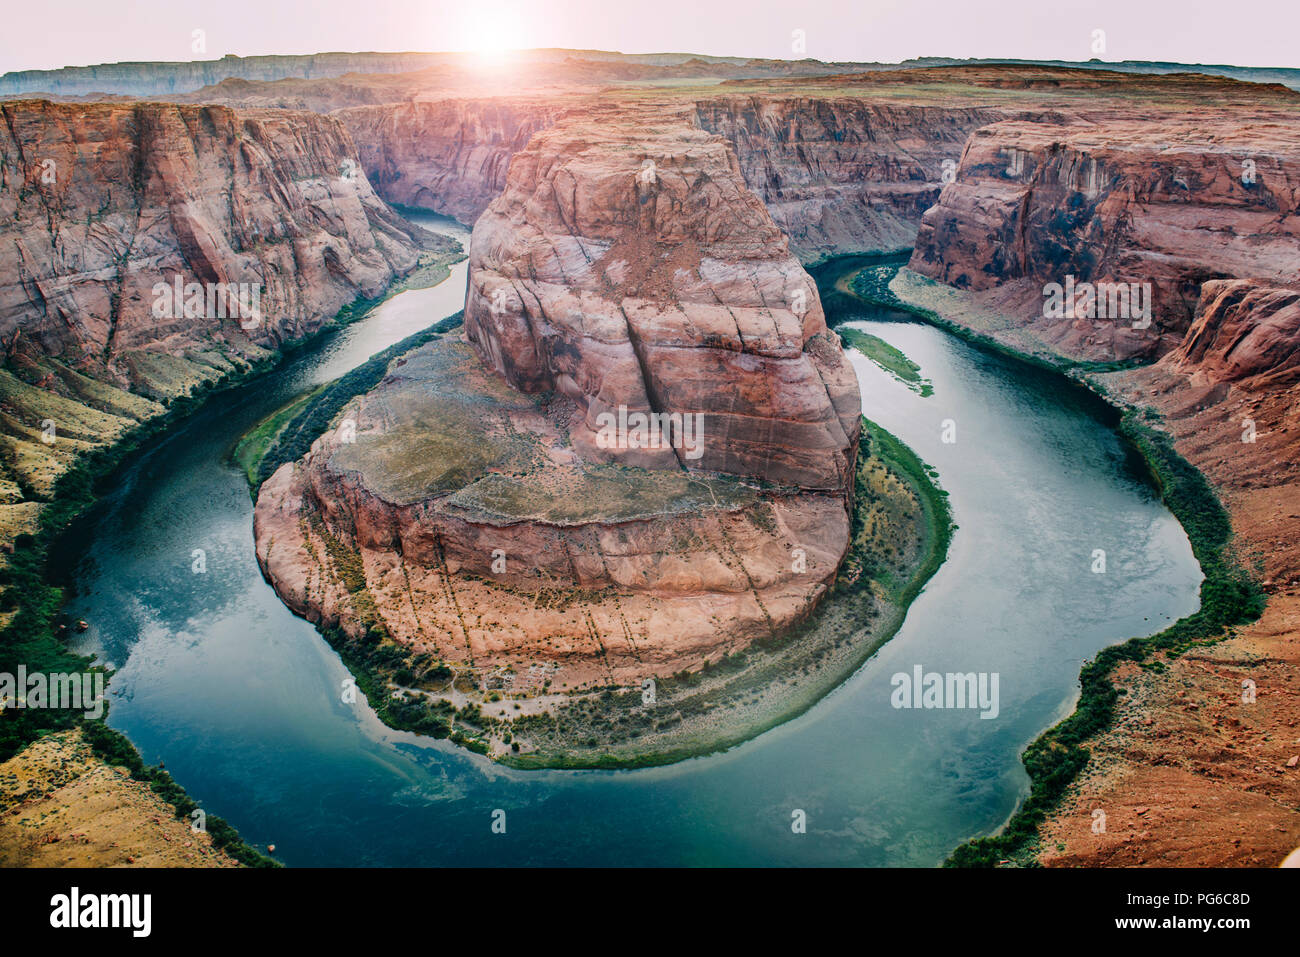 SA, Arizona, pagina, il Fiume Colorado, Glen Canyon National Recreation Area, piegare a ferro di cavallo al tramonto Immagini Stock